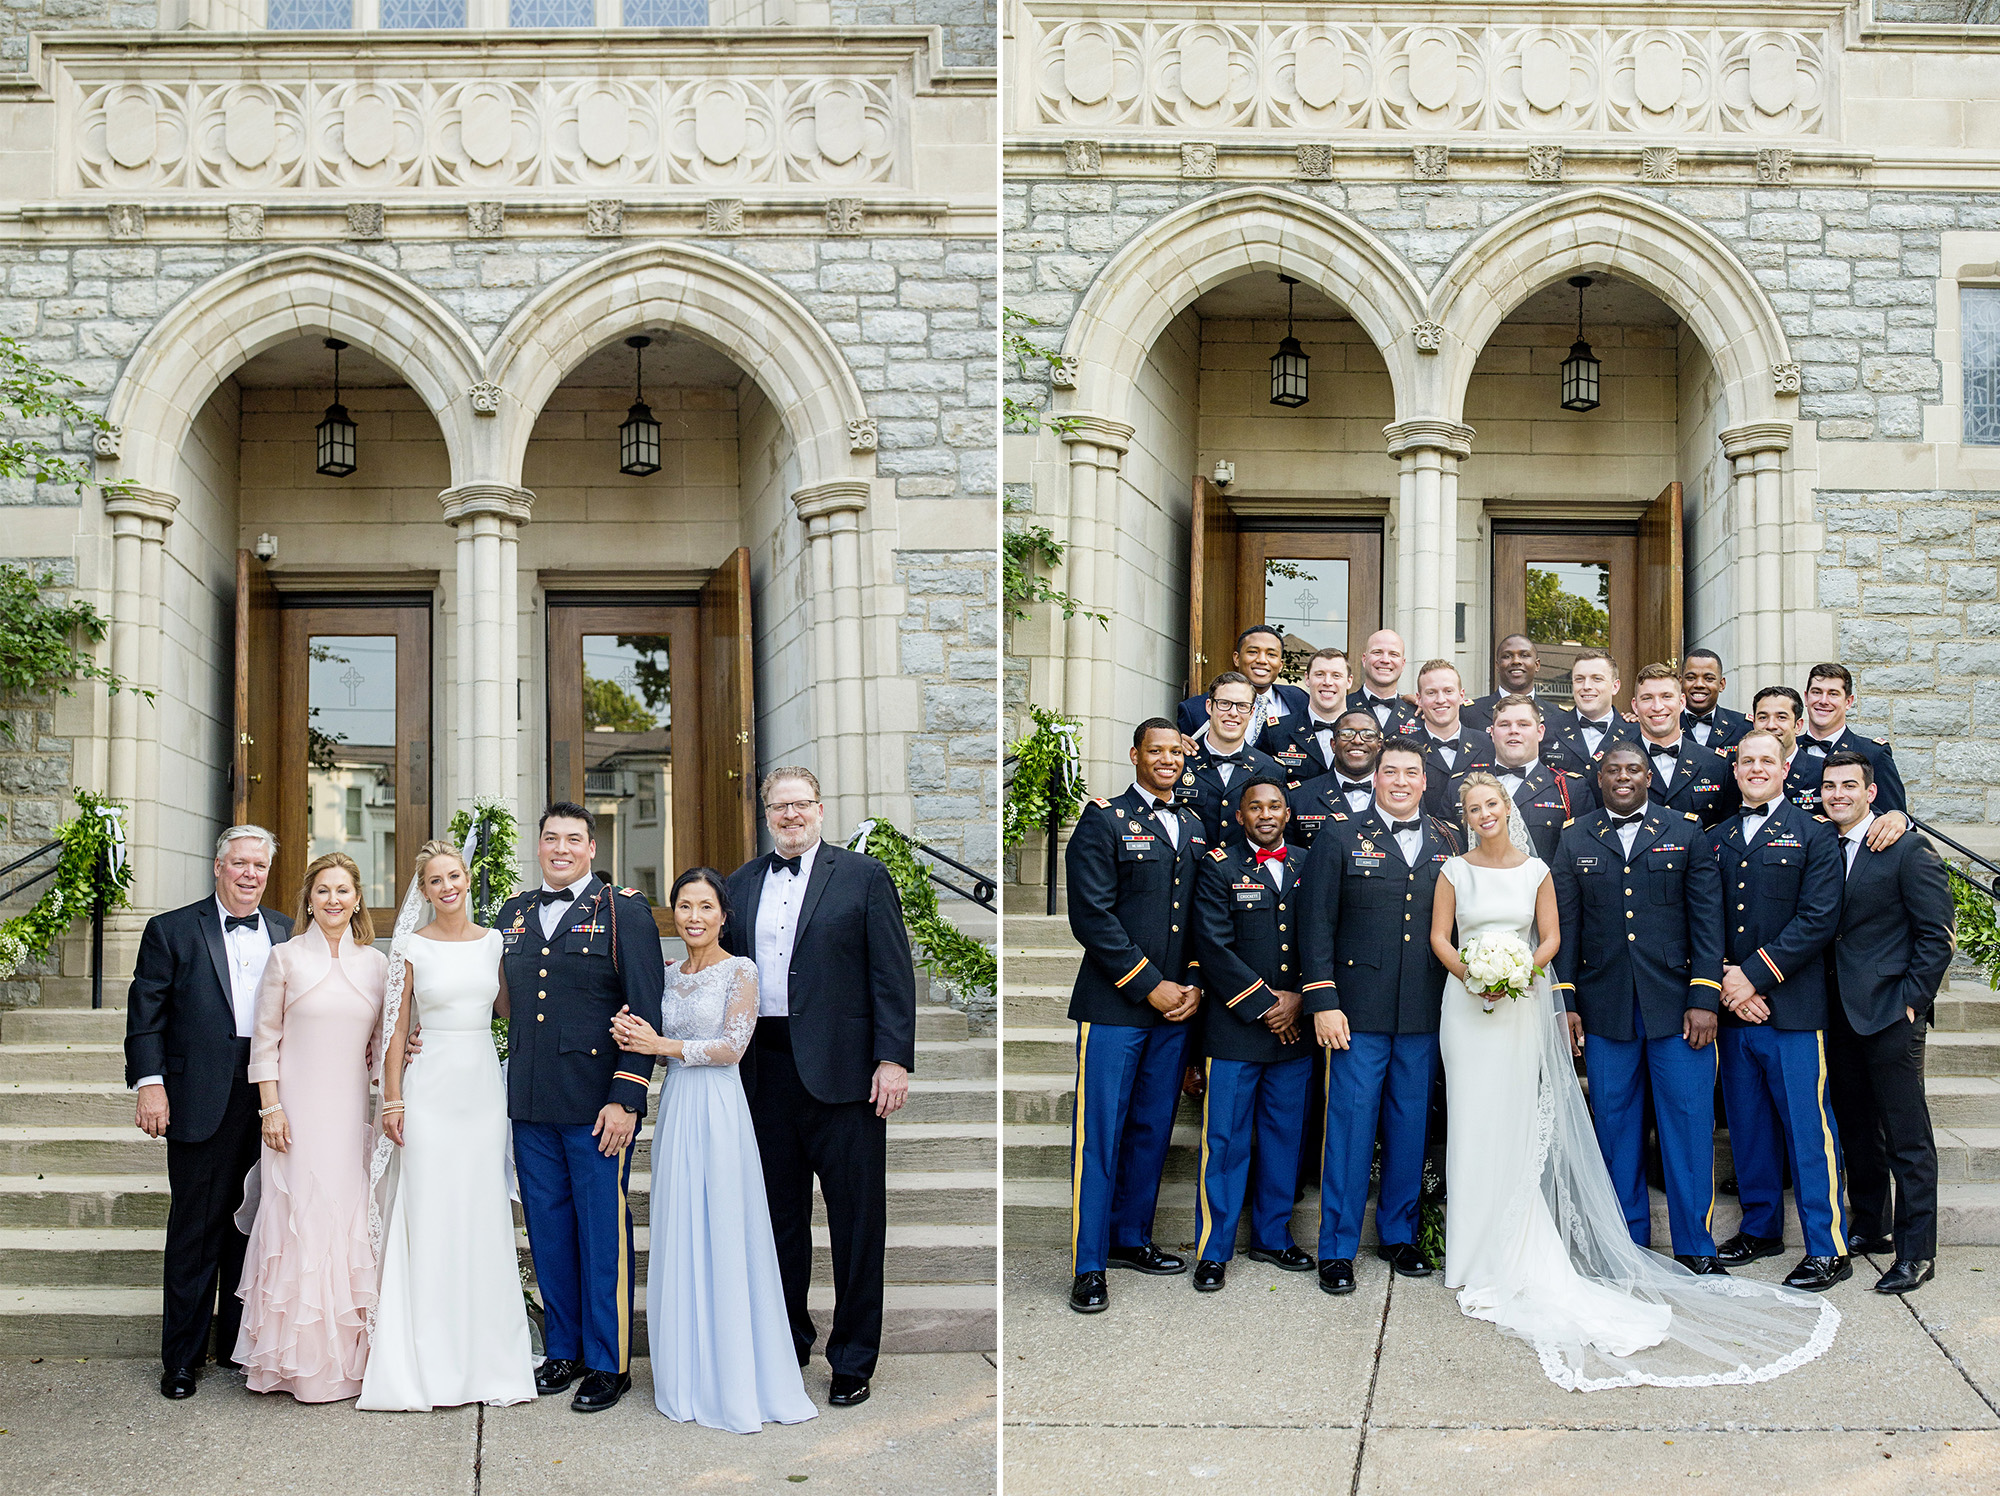 Seriously_Sabrina_Photography_Lexington_Kentucky_Second_Presbyterian_Church_Idle_Hour_Country_Club_Wedding_Kime_28.jpg